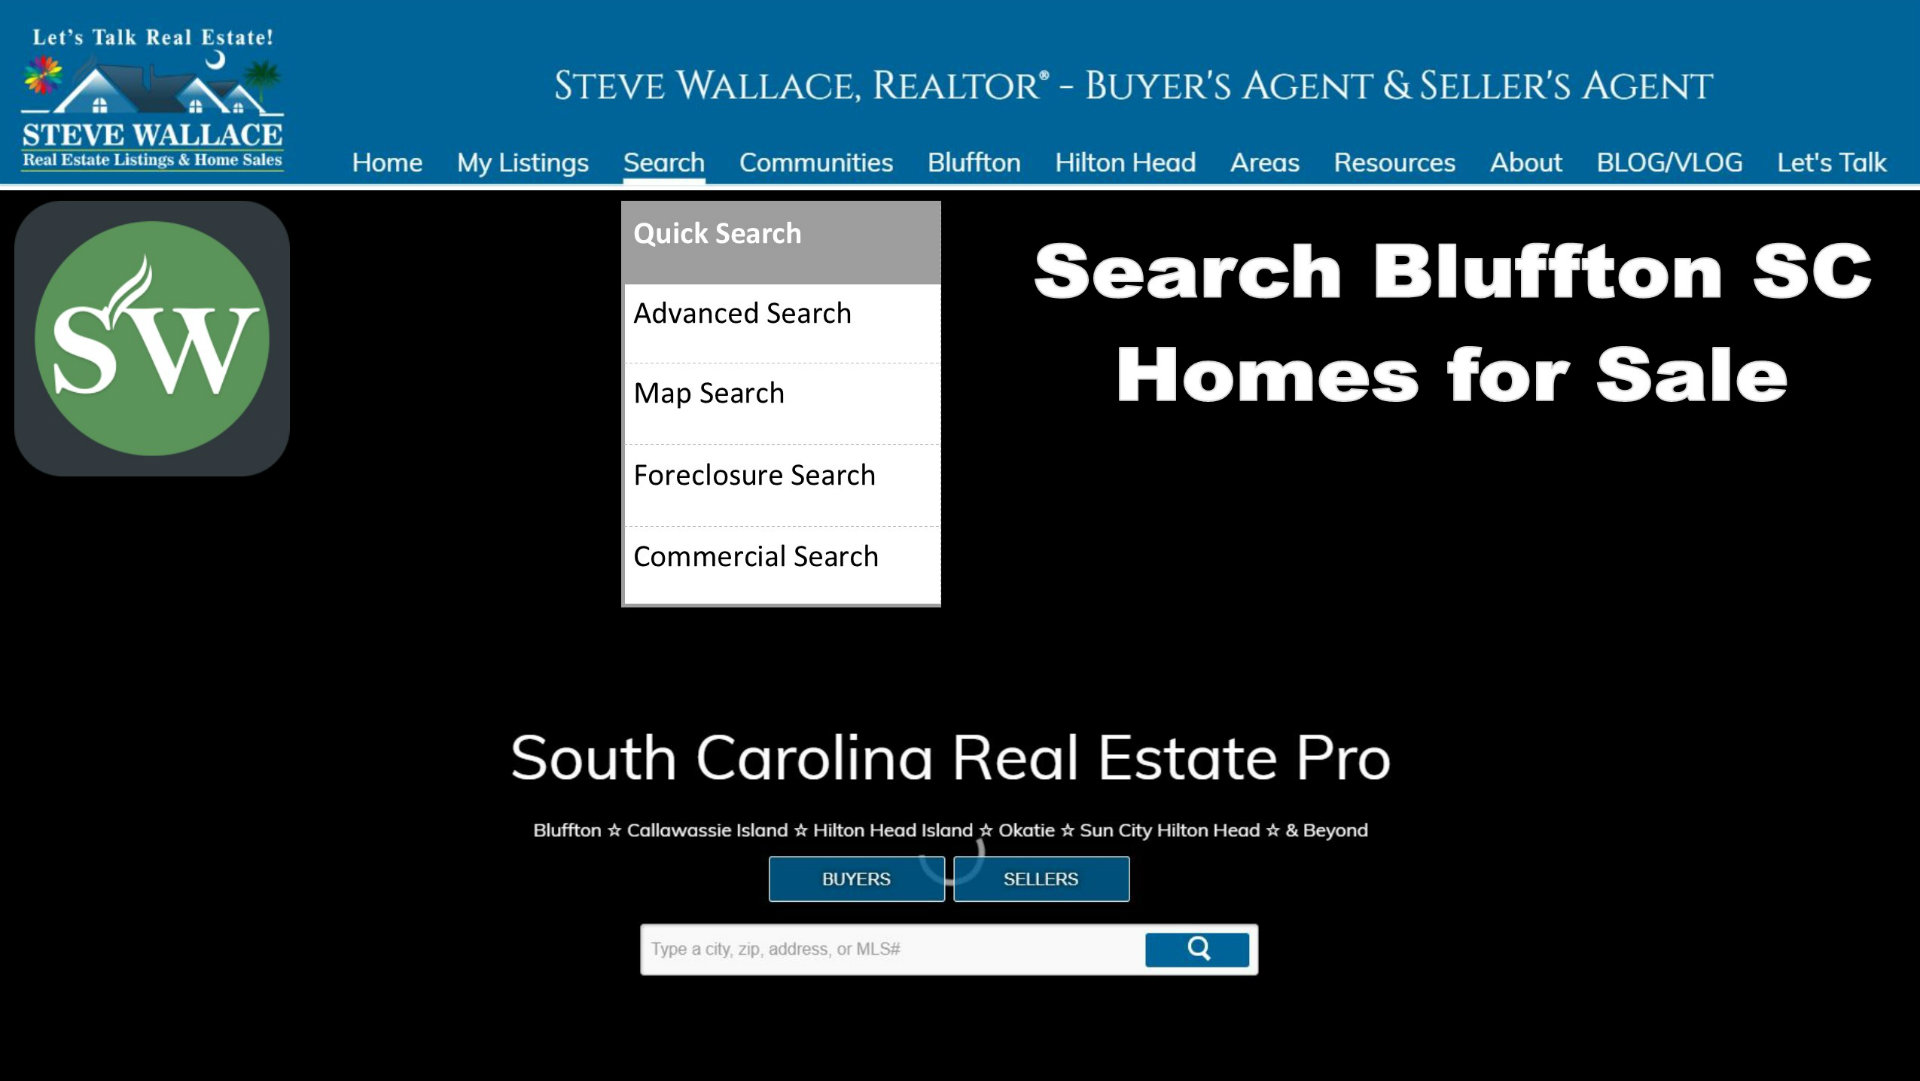 search bluffton sc homes for sale